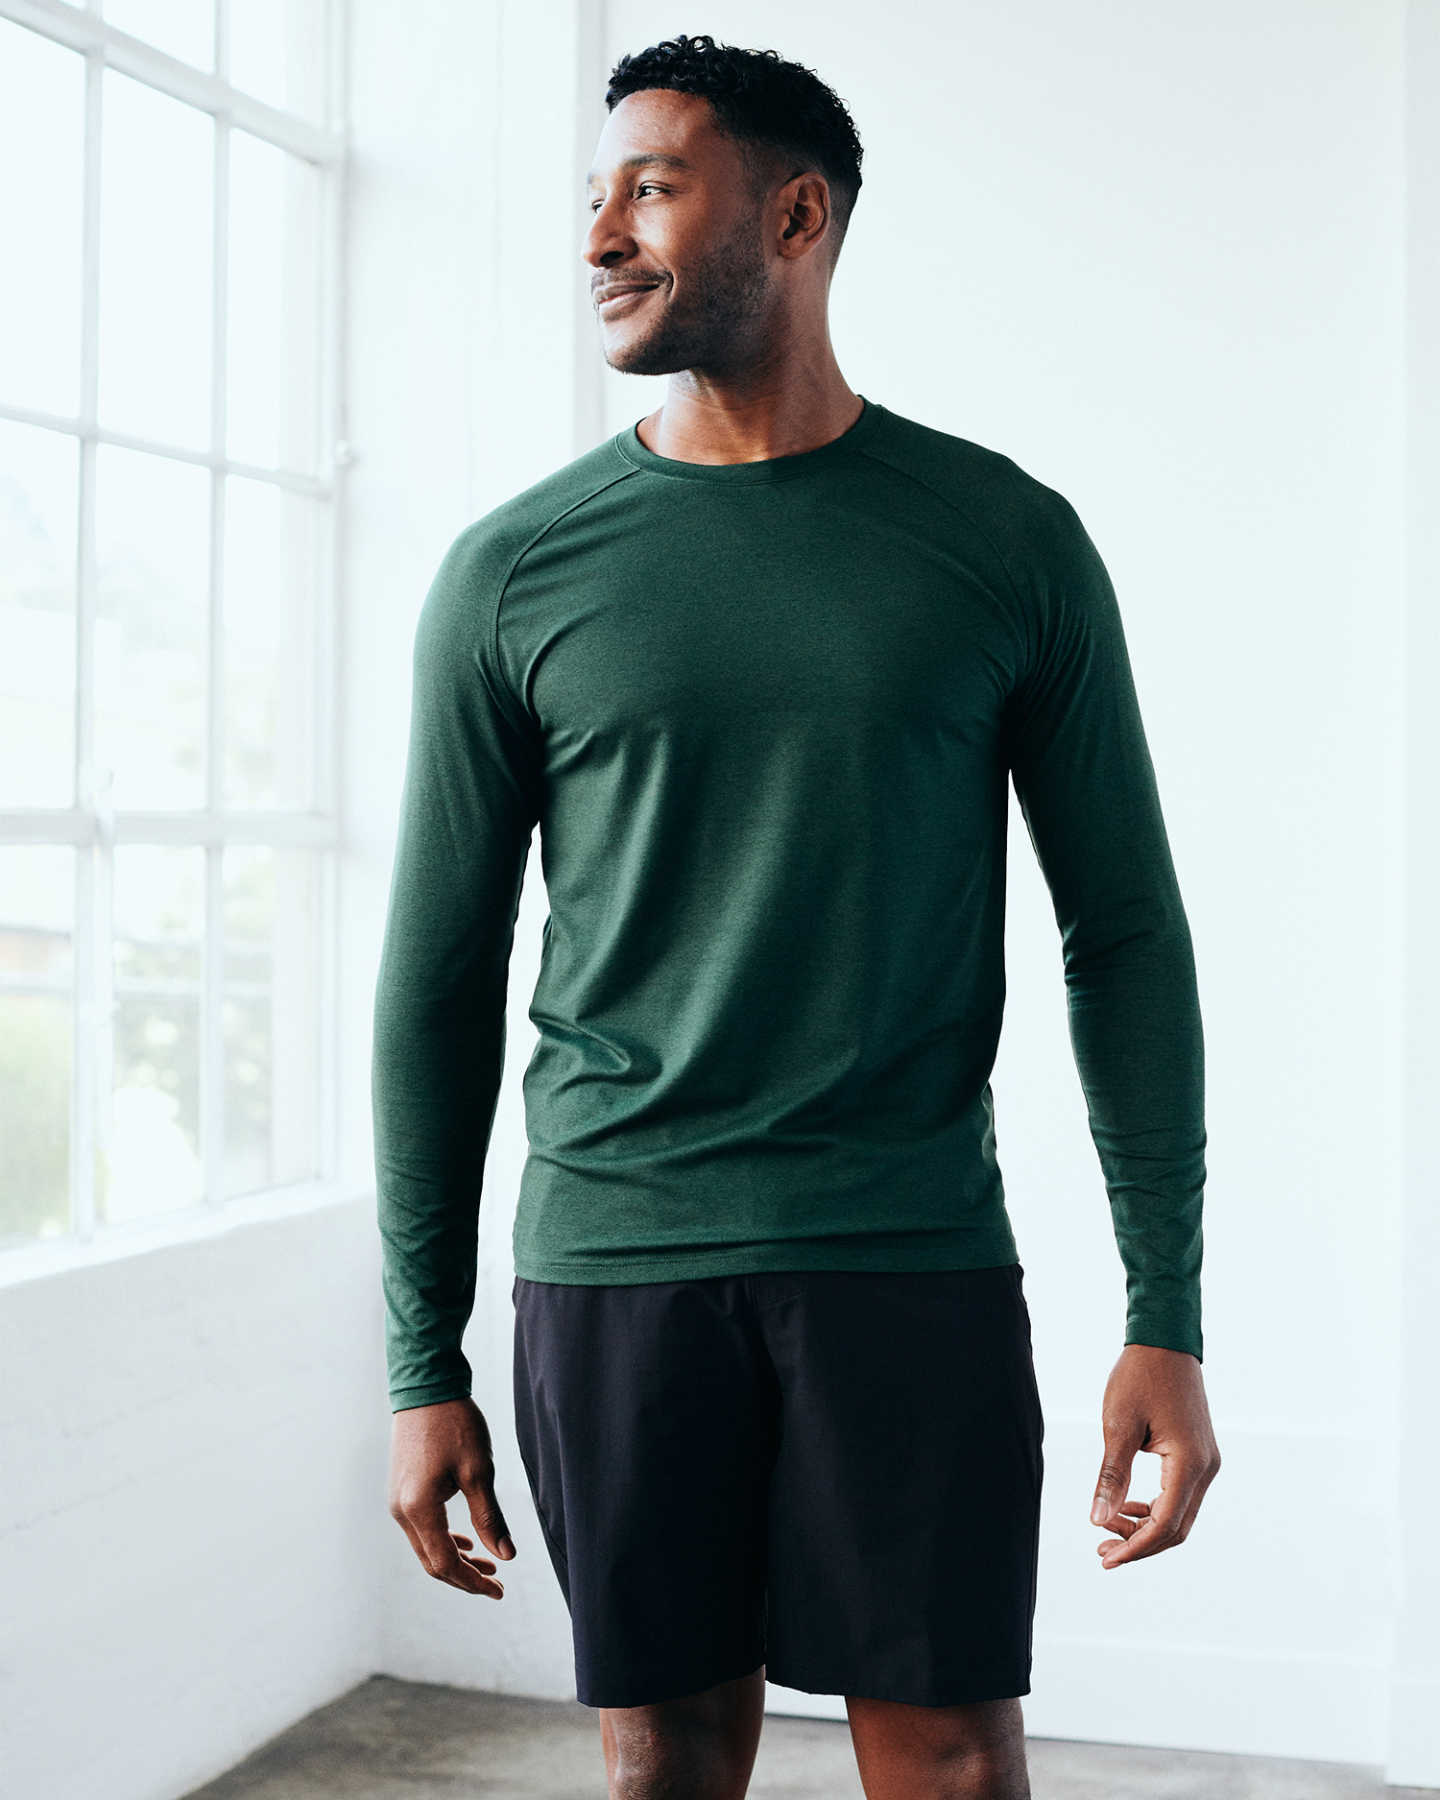 Flowknit Ultra-Soft Performance Long Sleeve Tee - Olive - 11